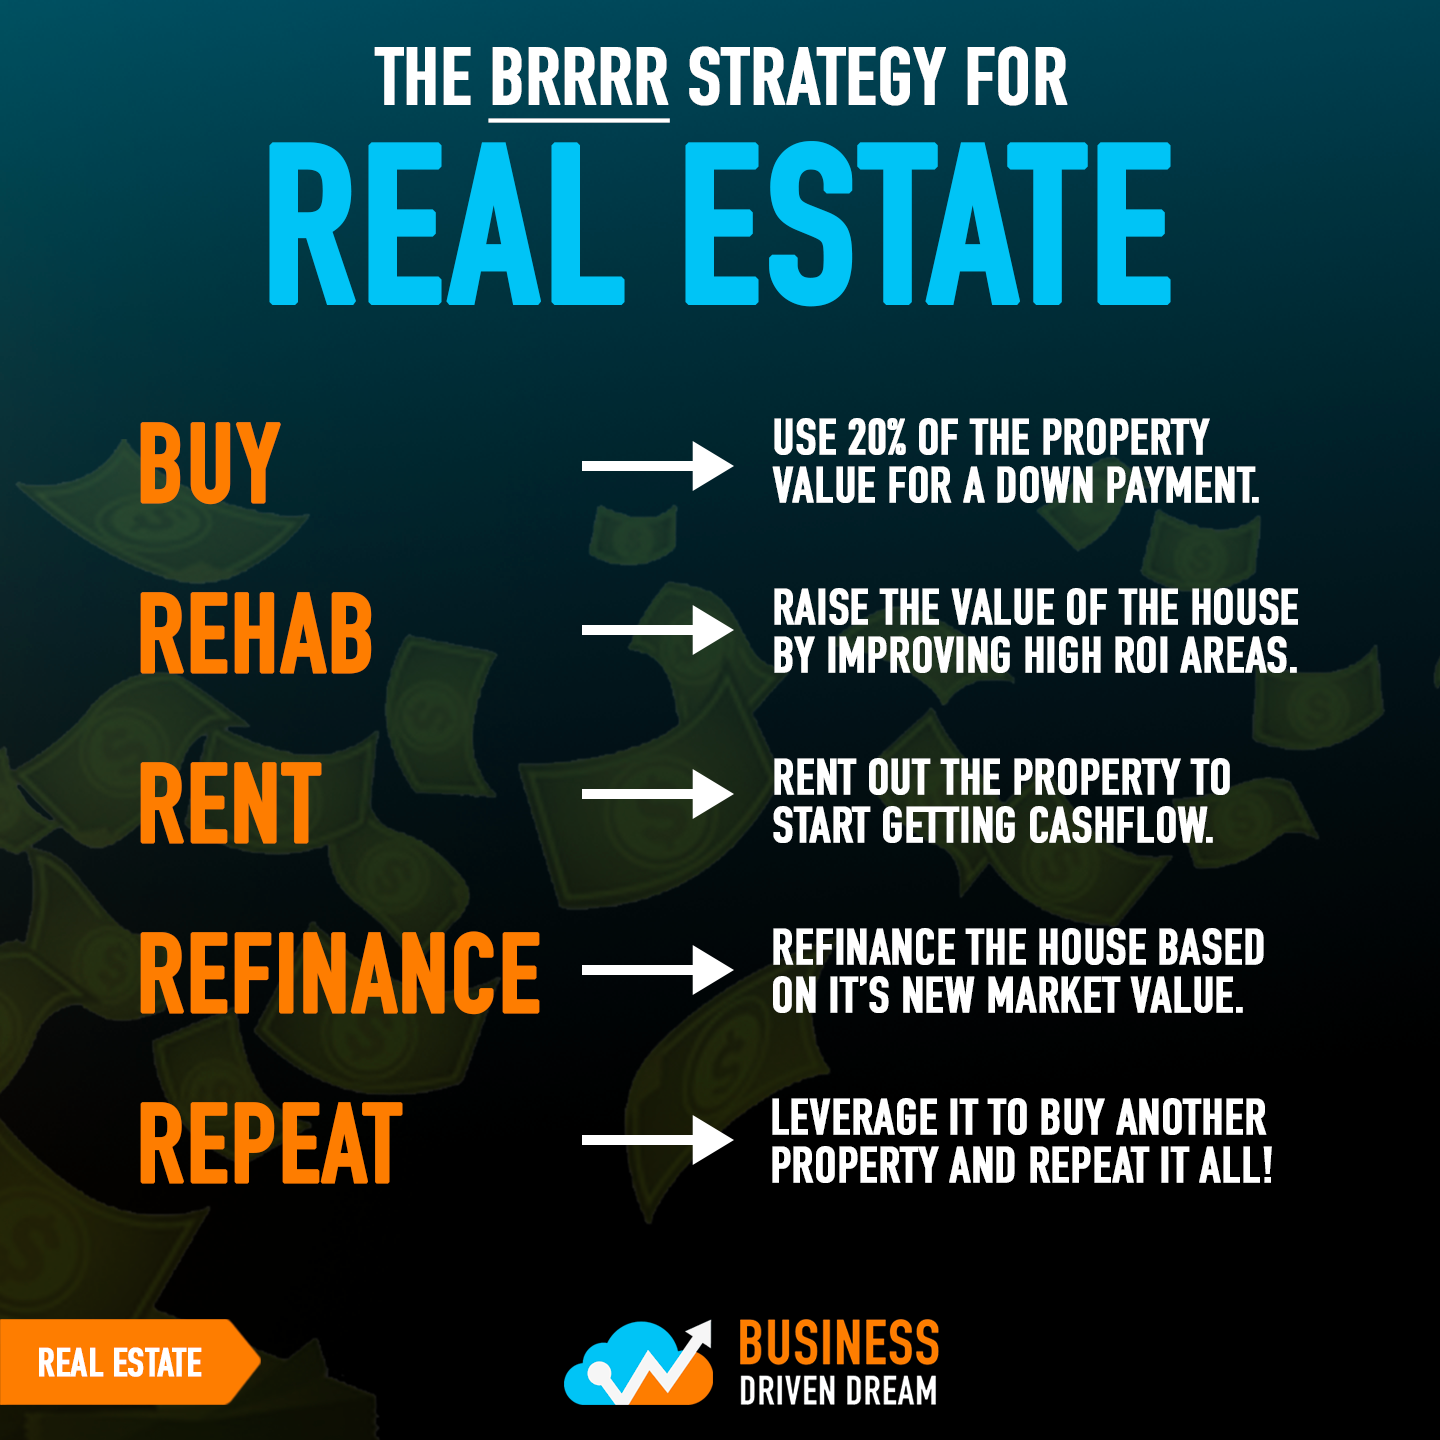 Business Driven Dream - Dreams Driven By Business #realestatetips